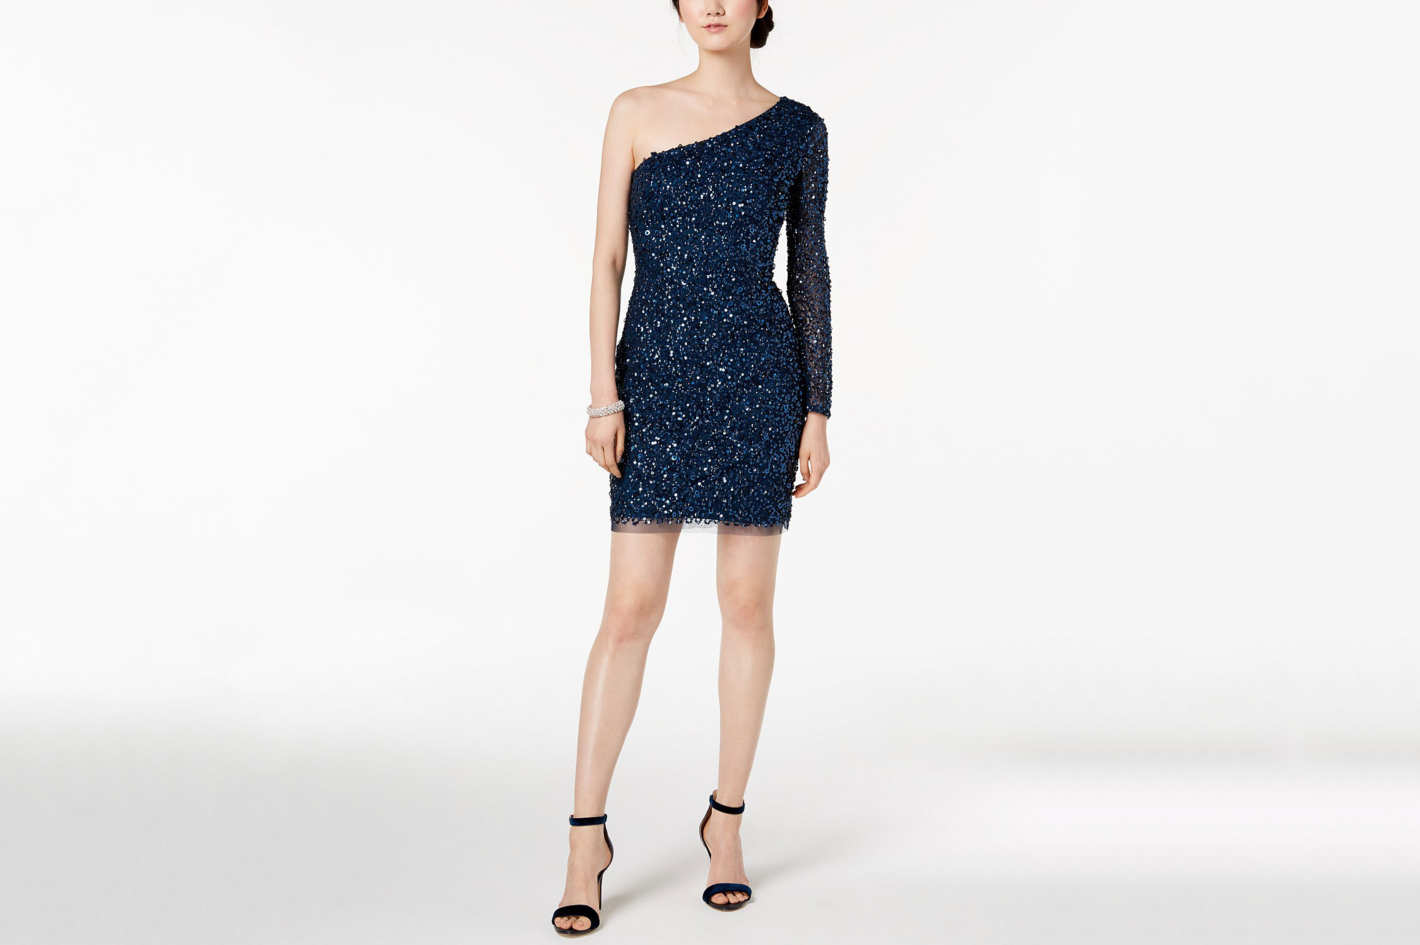 Adrianna Papell One-Shoulder Sequin Dress